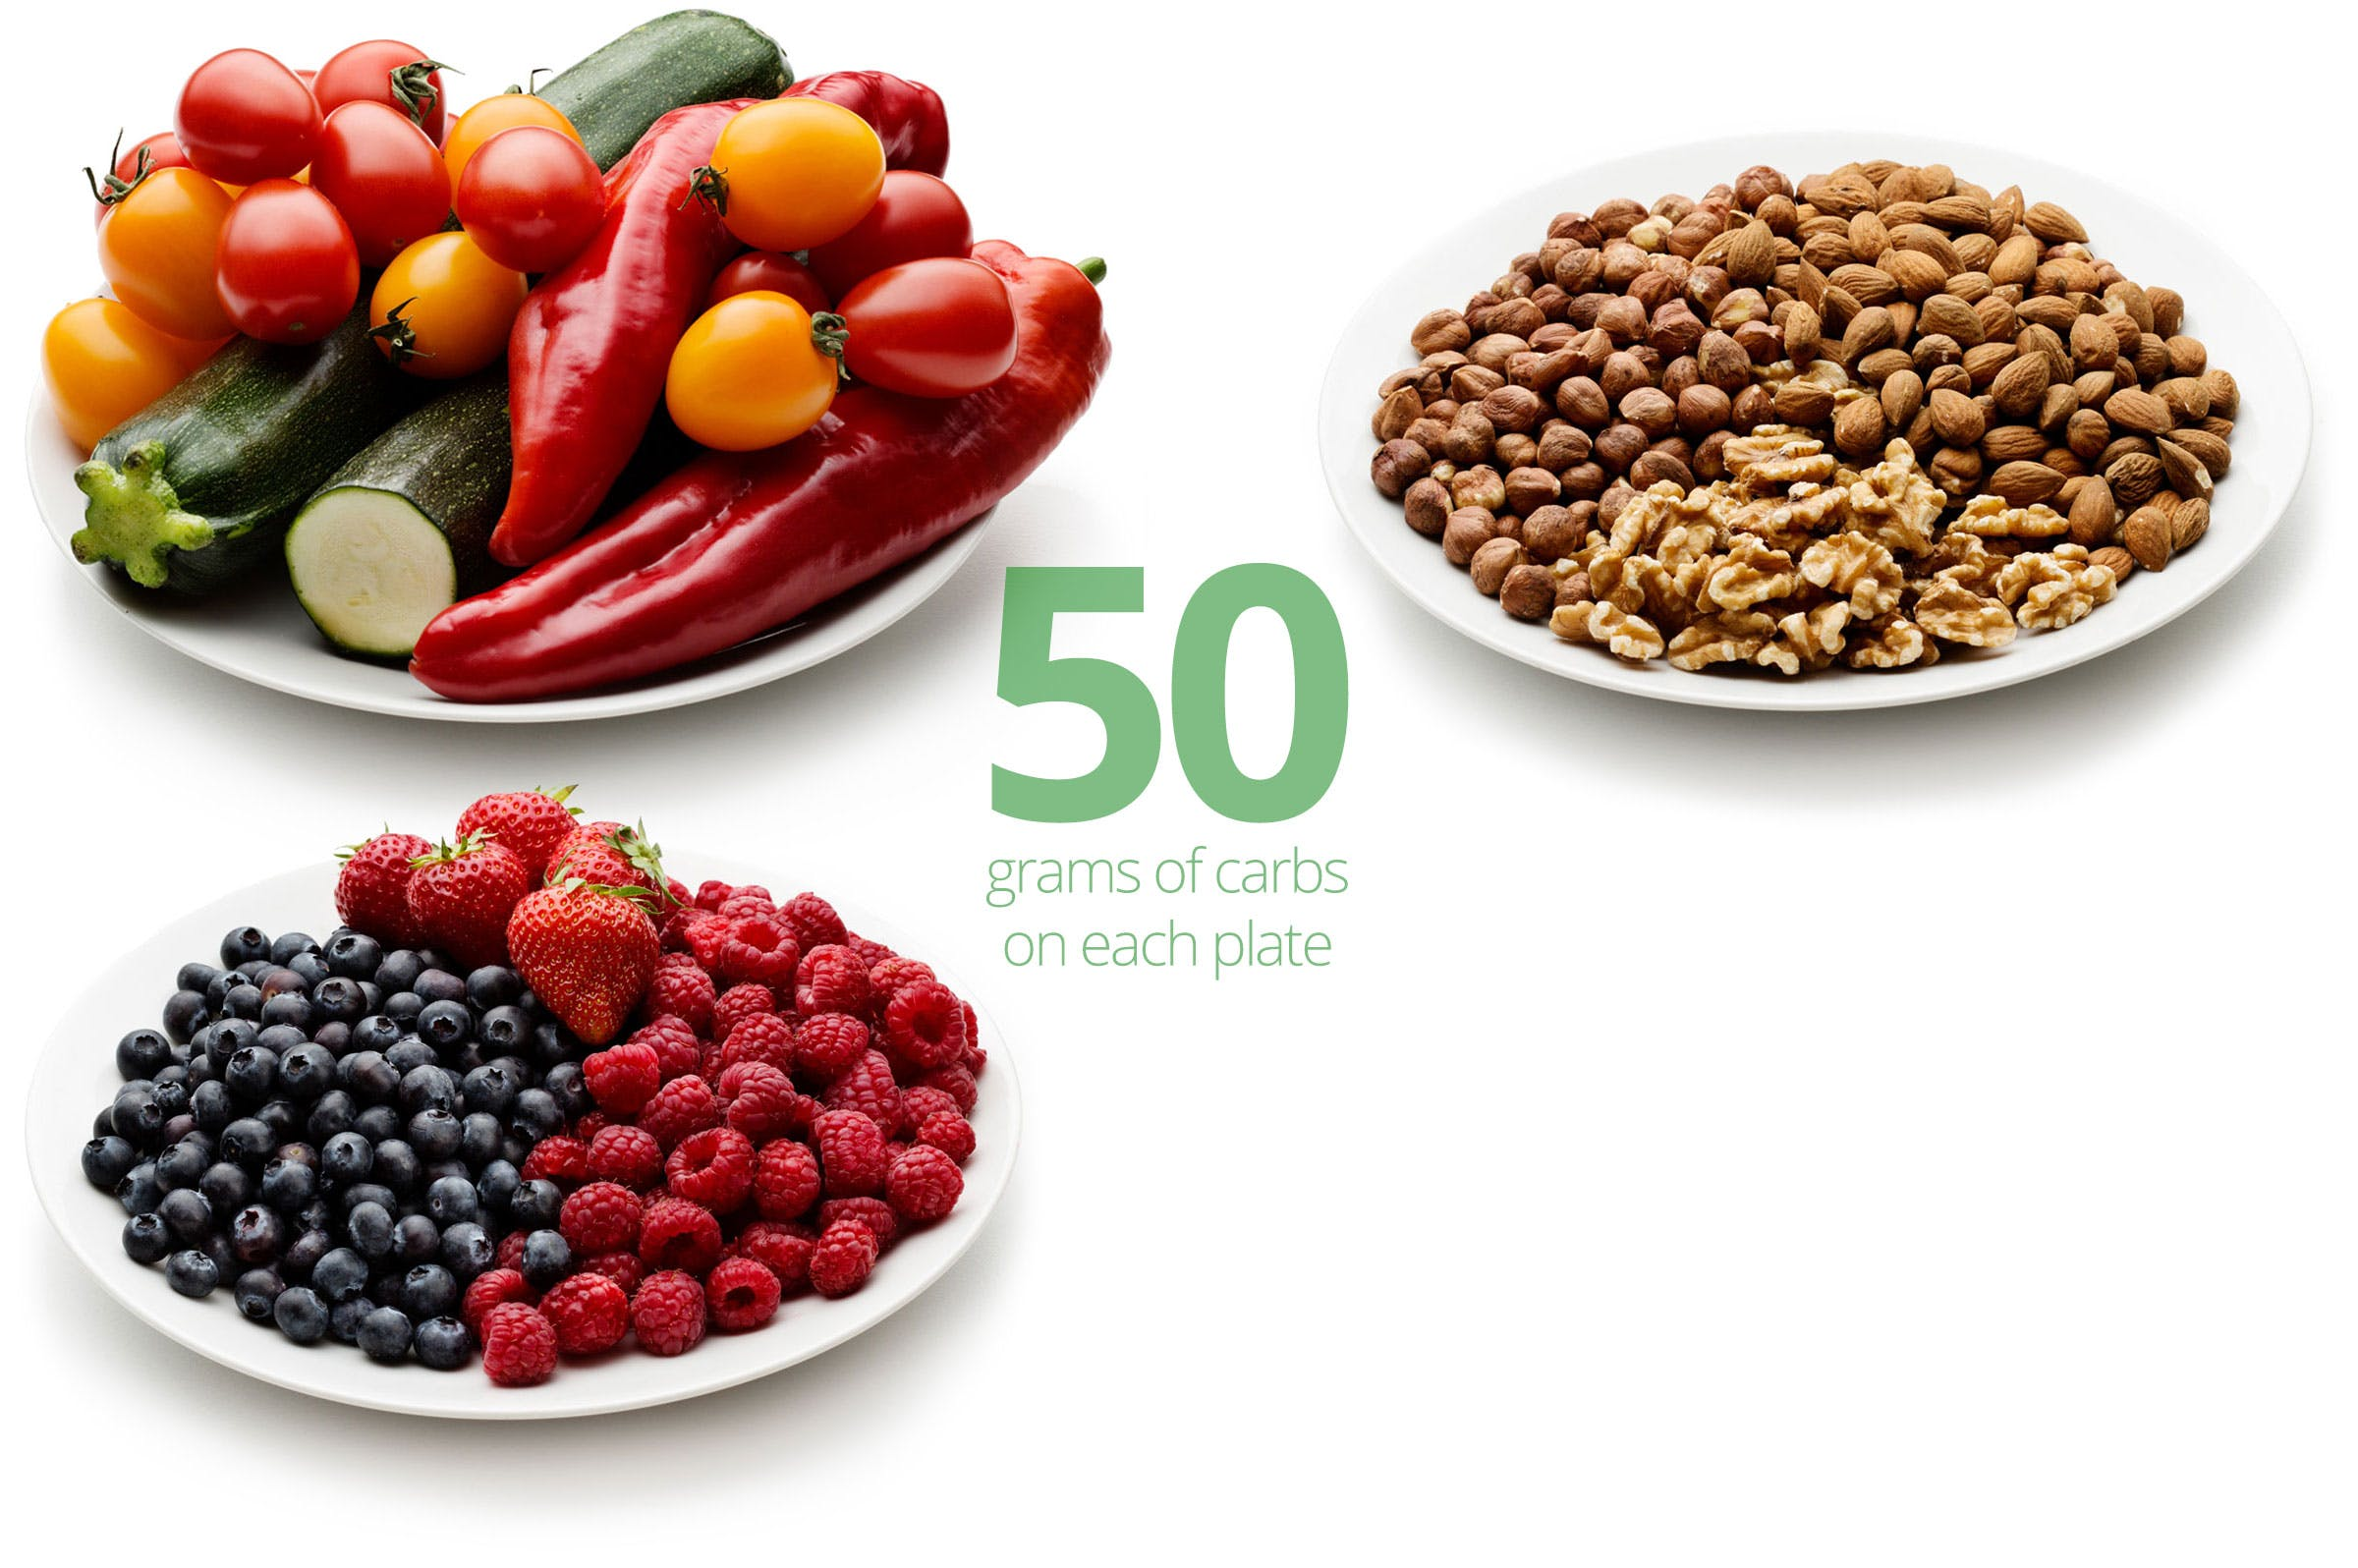 50 grams of carbs in vegetables, nuts, berries